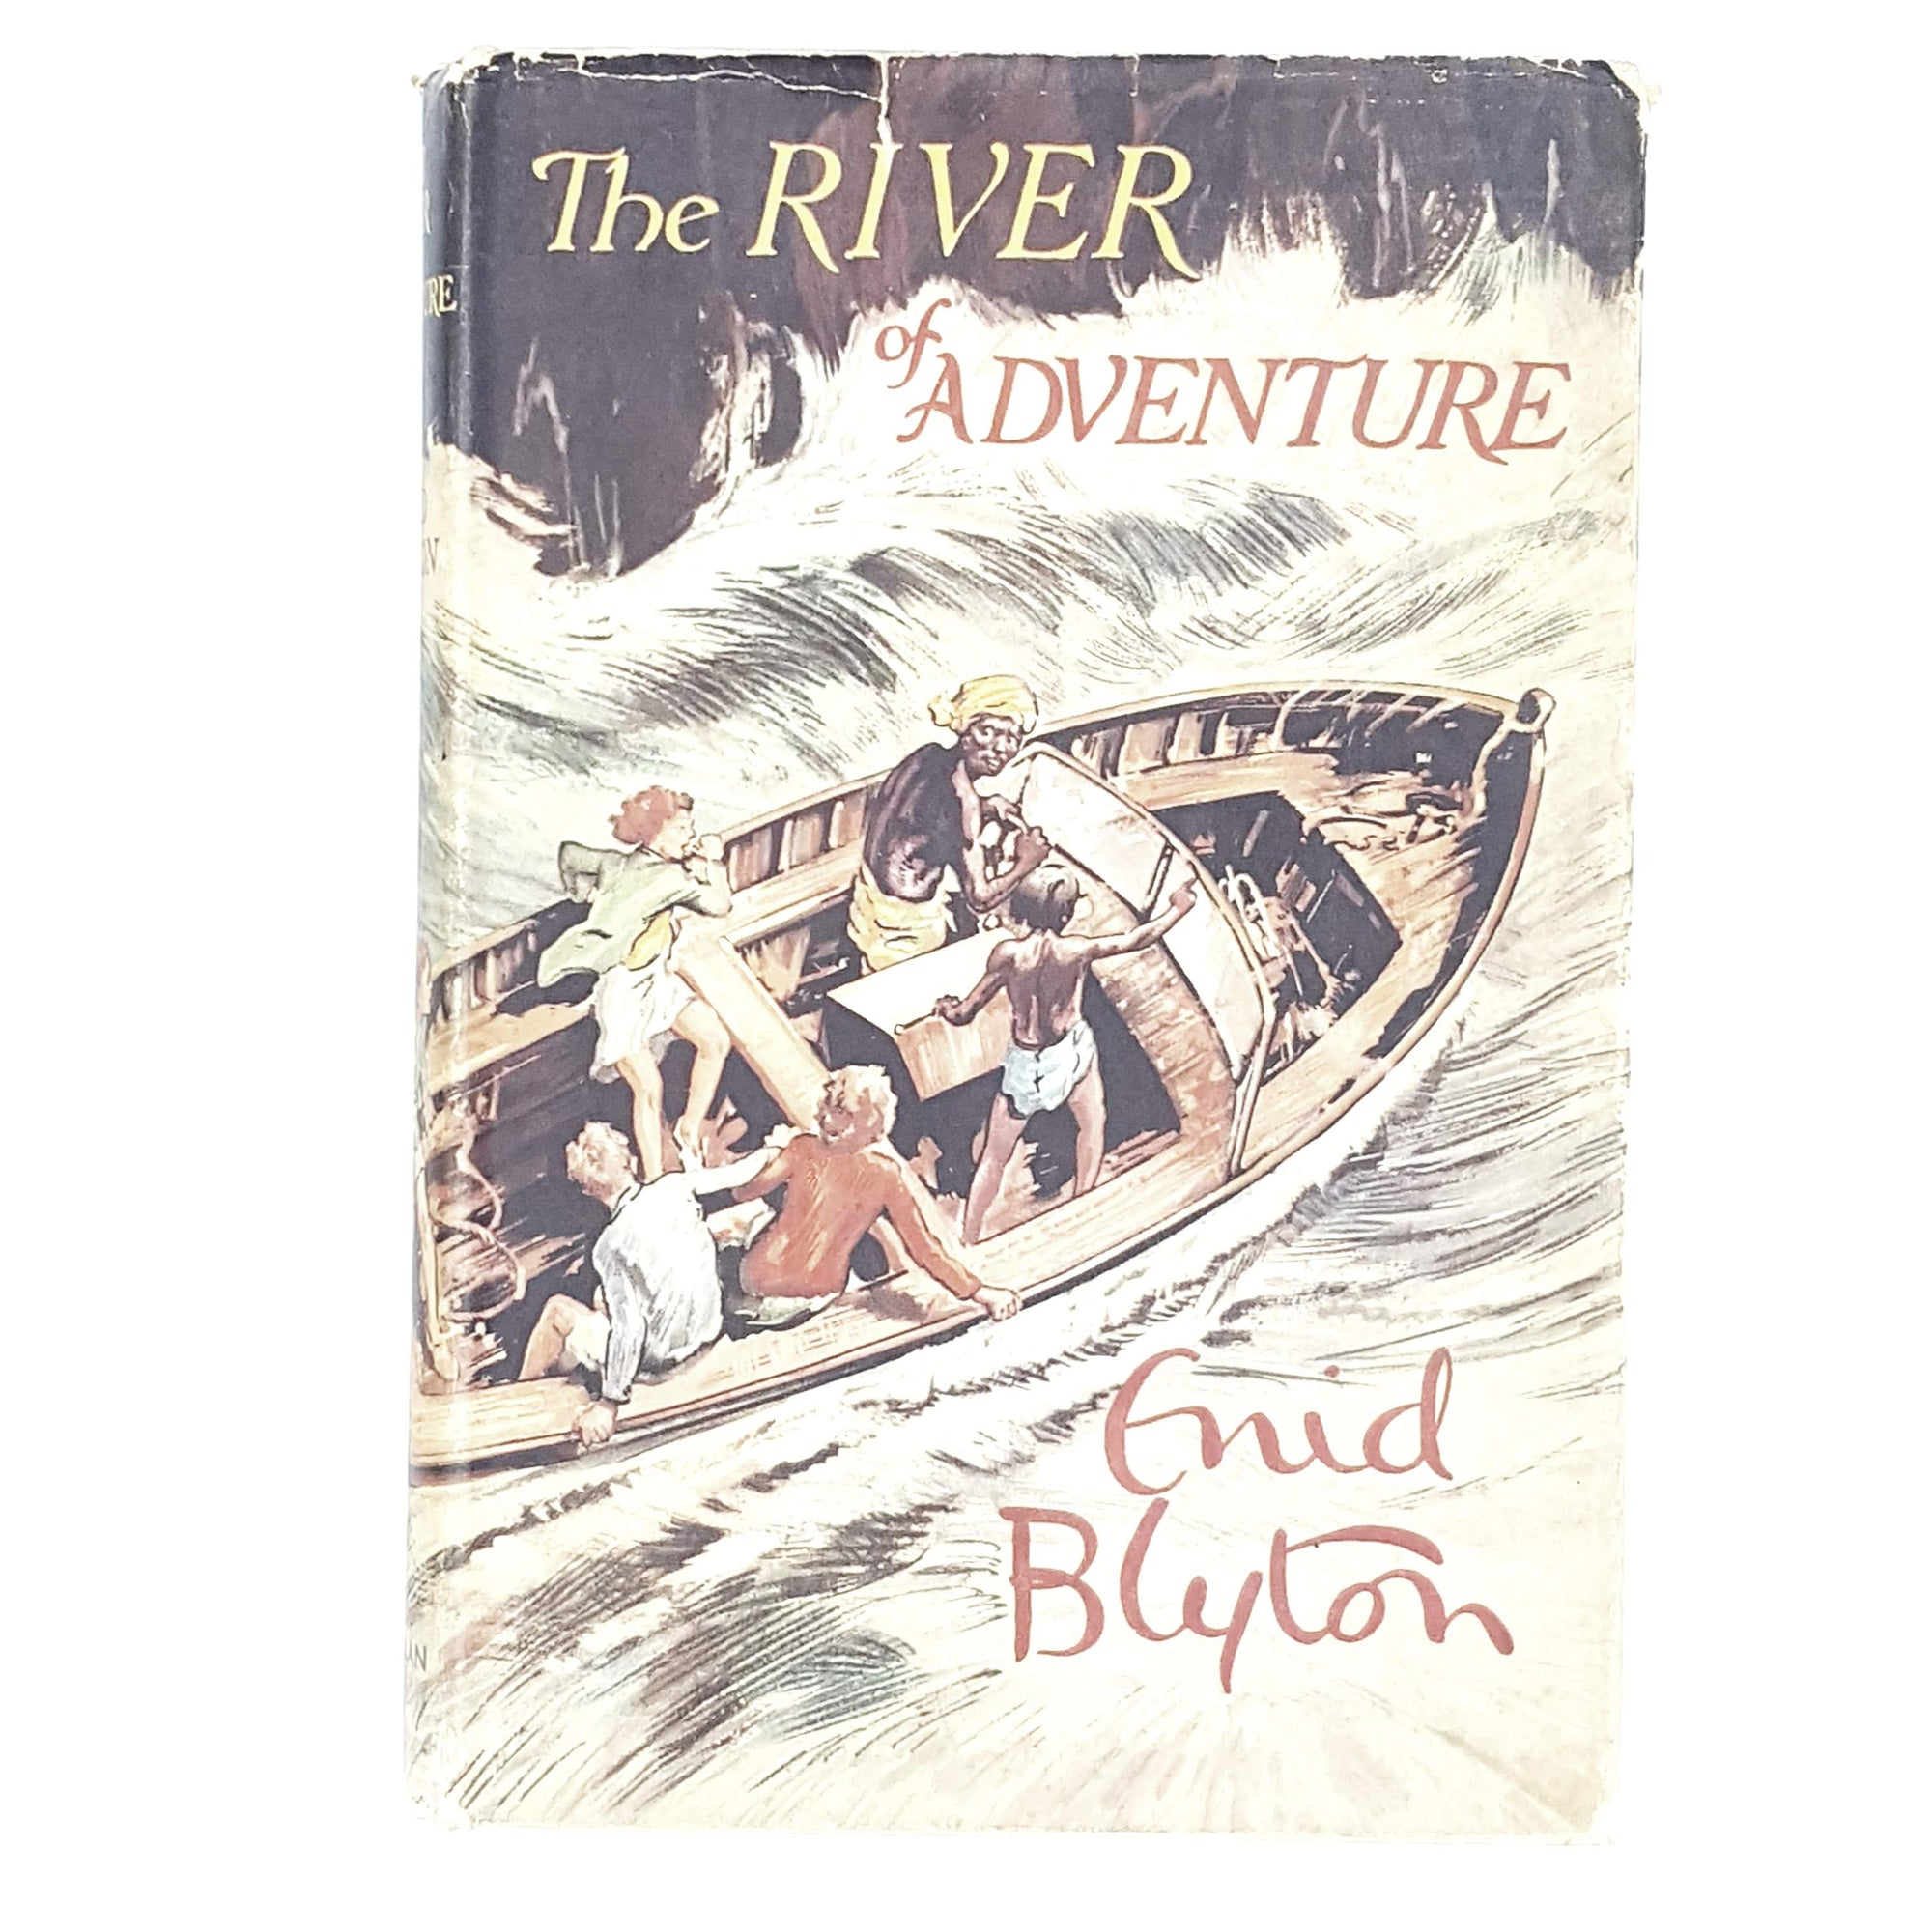 Enid Blyton's The River of Adventure 1955